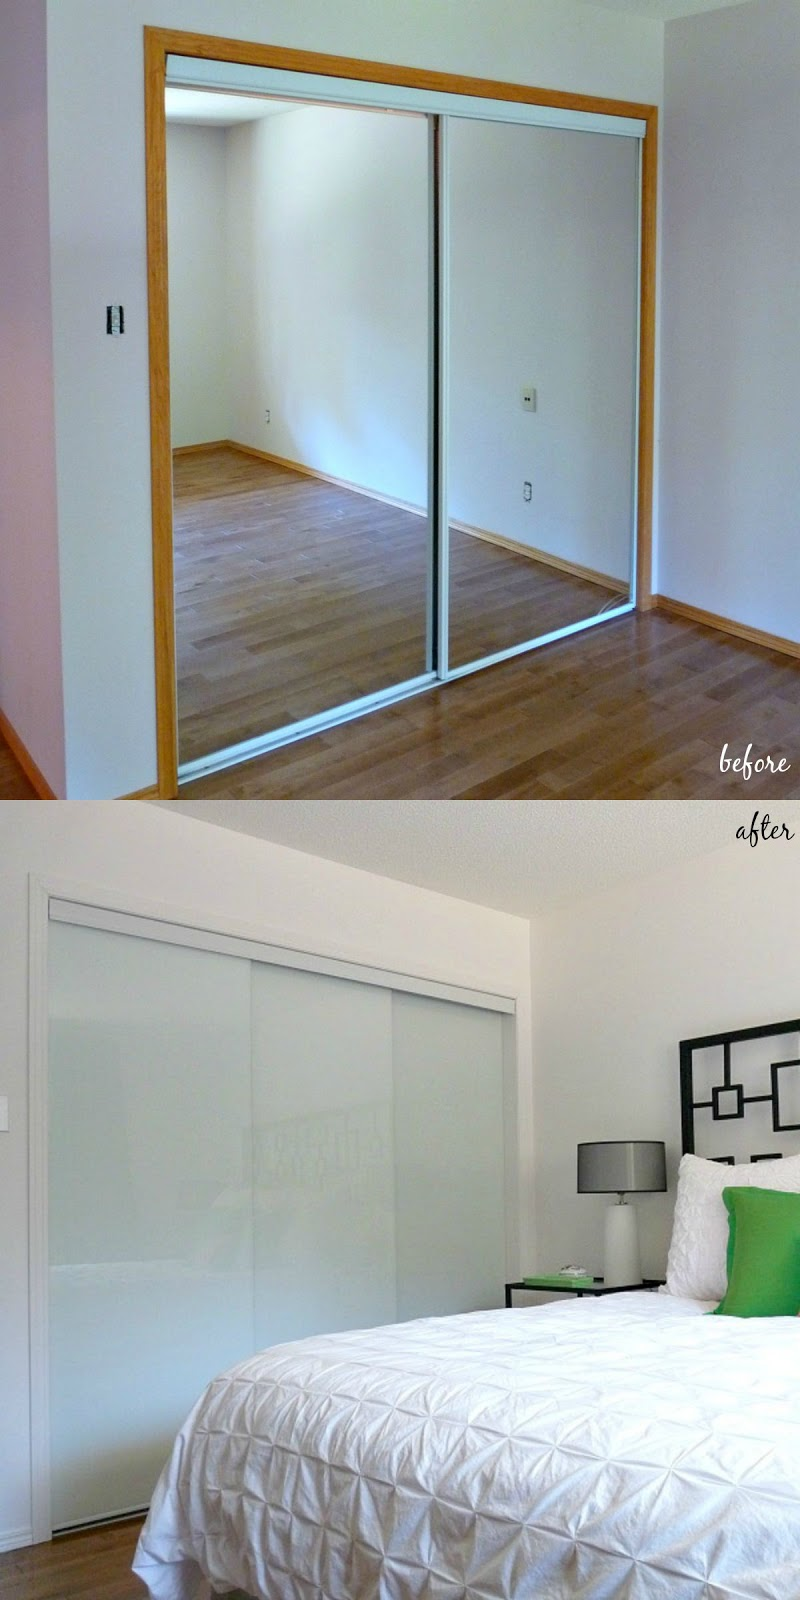 new white glass sliding closet doors in the bedroom dans le lakehouse. Black Bedroom Furniture Sets. Home Design Ideas